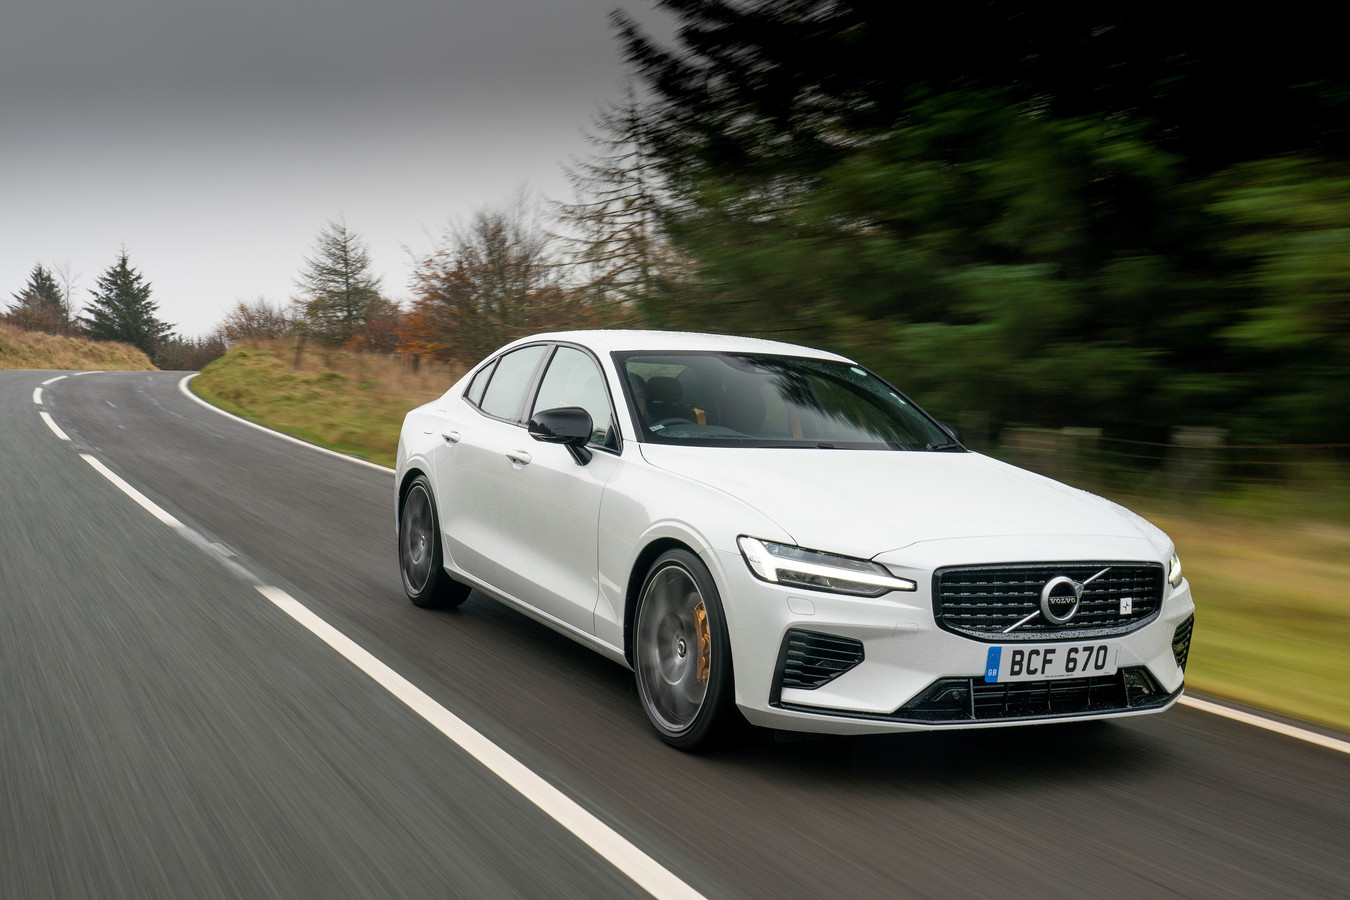 De Volvo S60 T8 Polestar Engineered